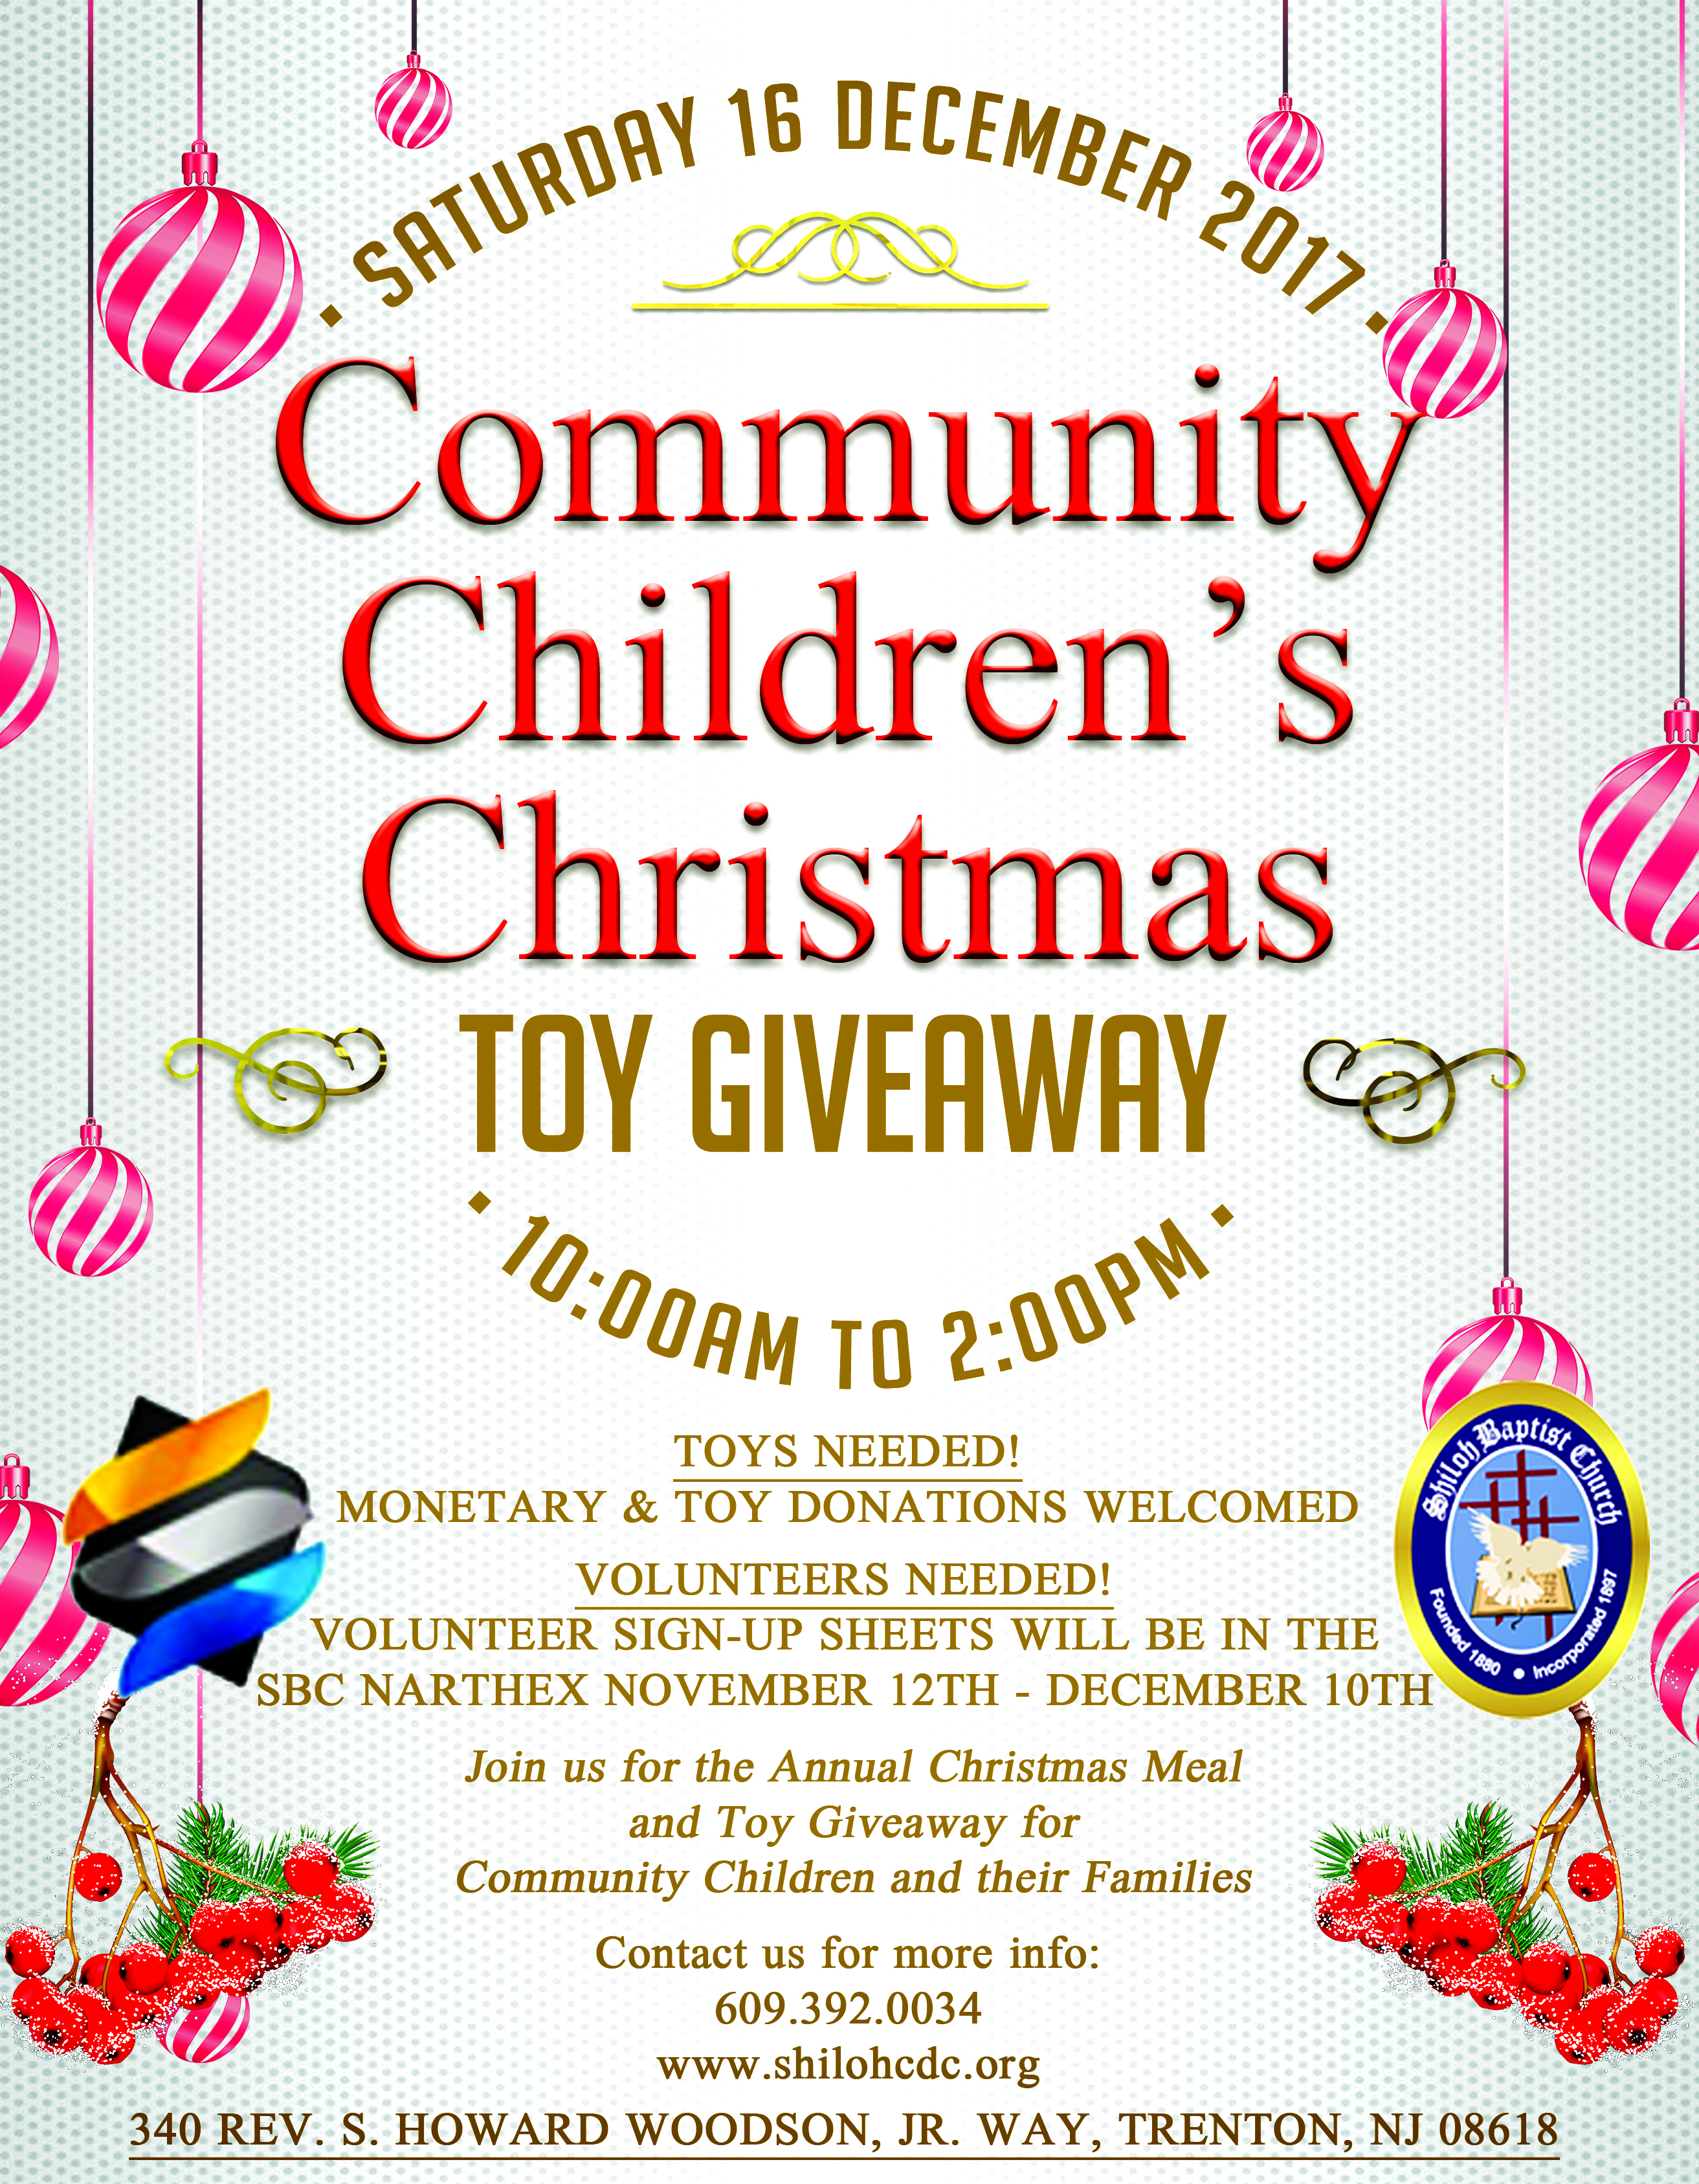 Christmas toys giveaway